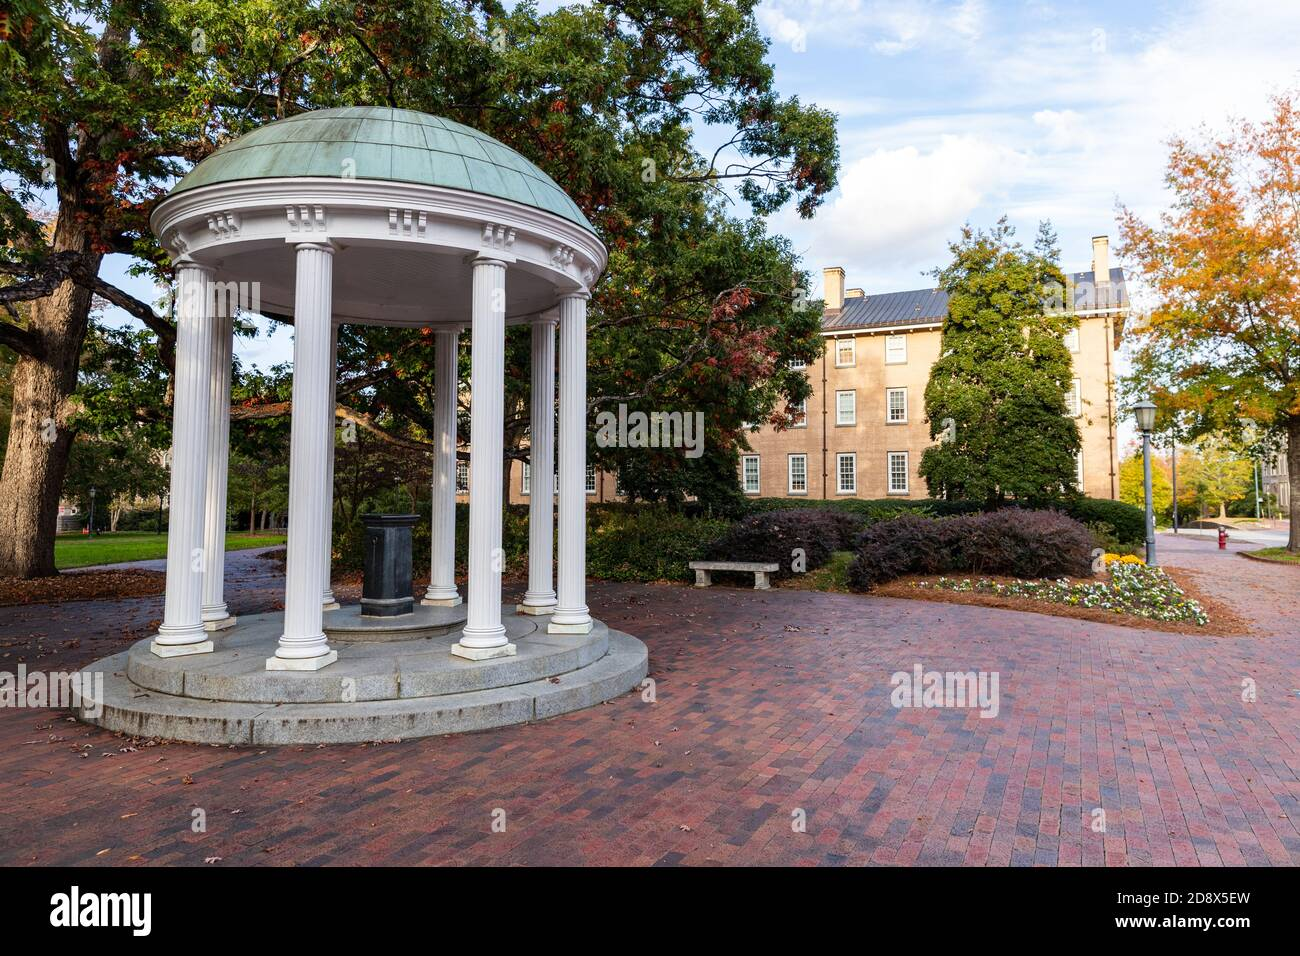 Chapel Hill, NC / USA - October 22, 2020: The Old Well on the campus of the University of North Carolina Chapel Hill Stock Photo